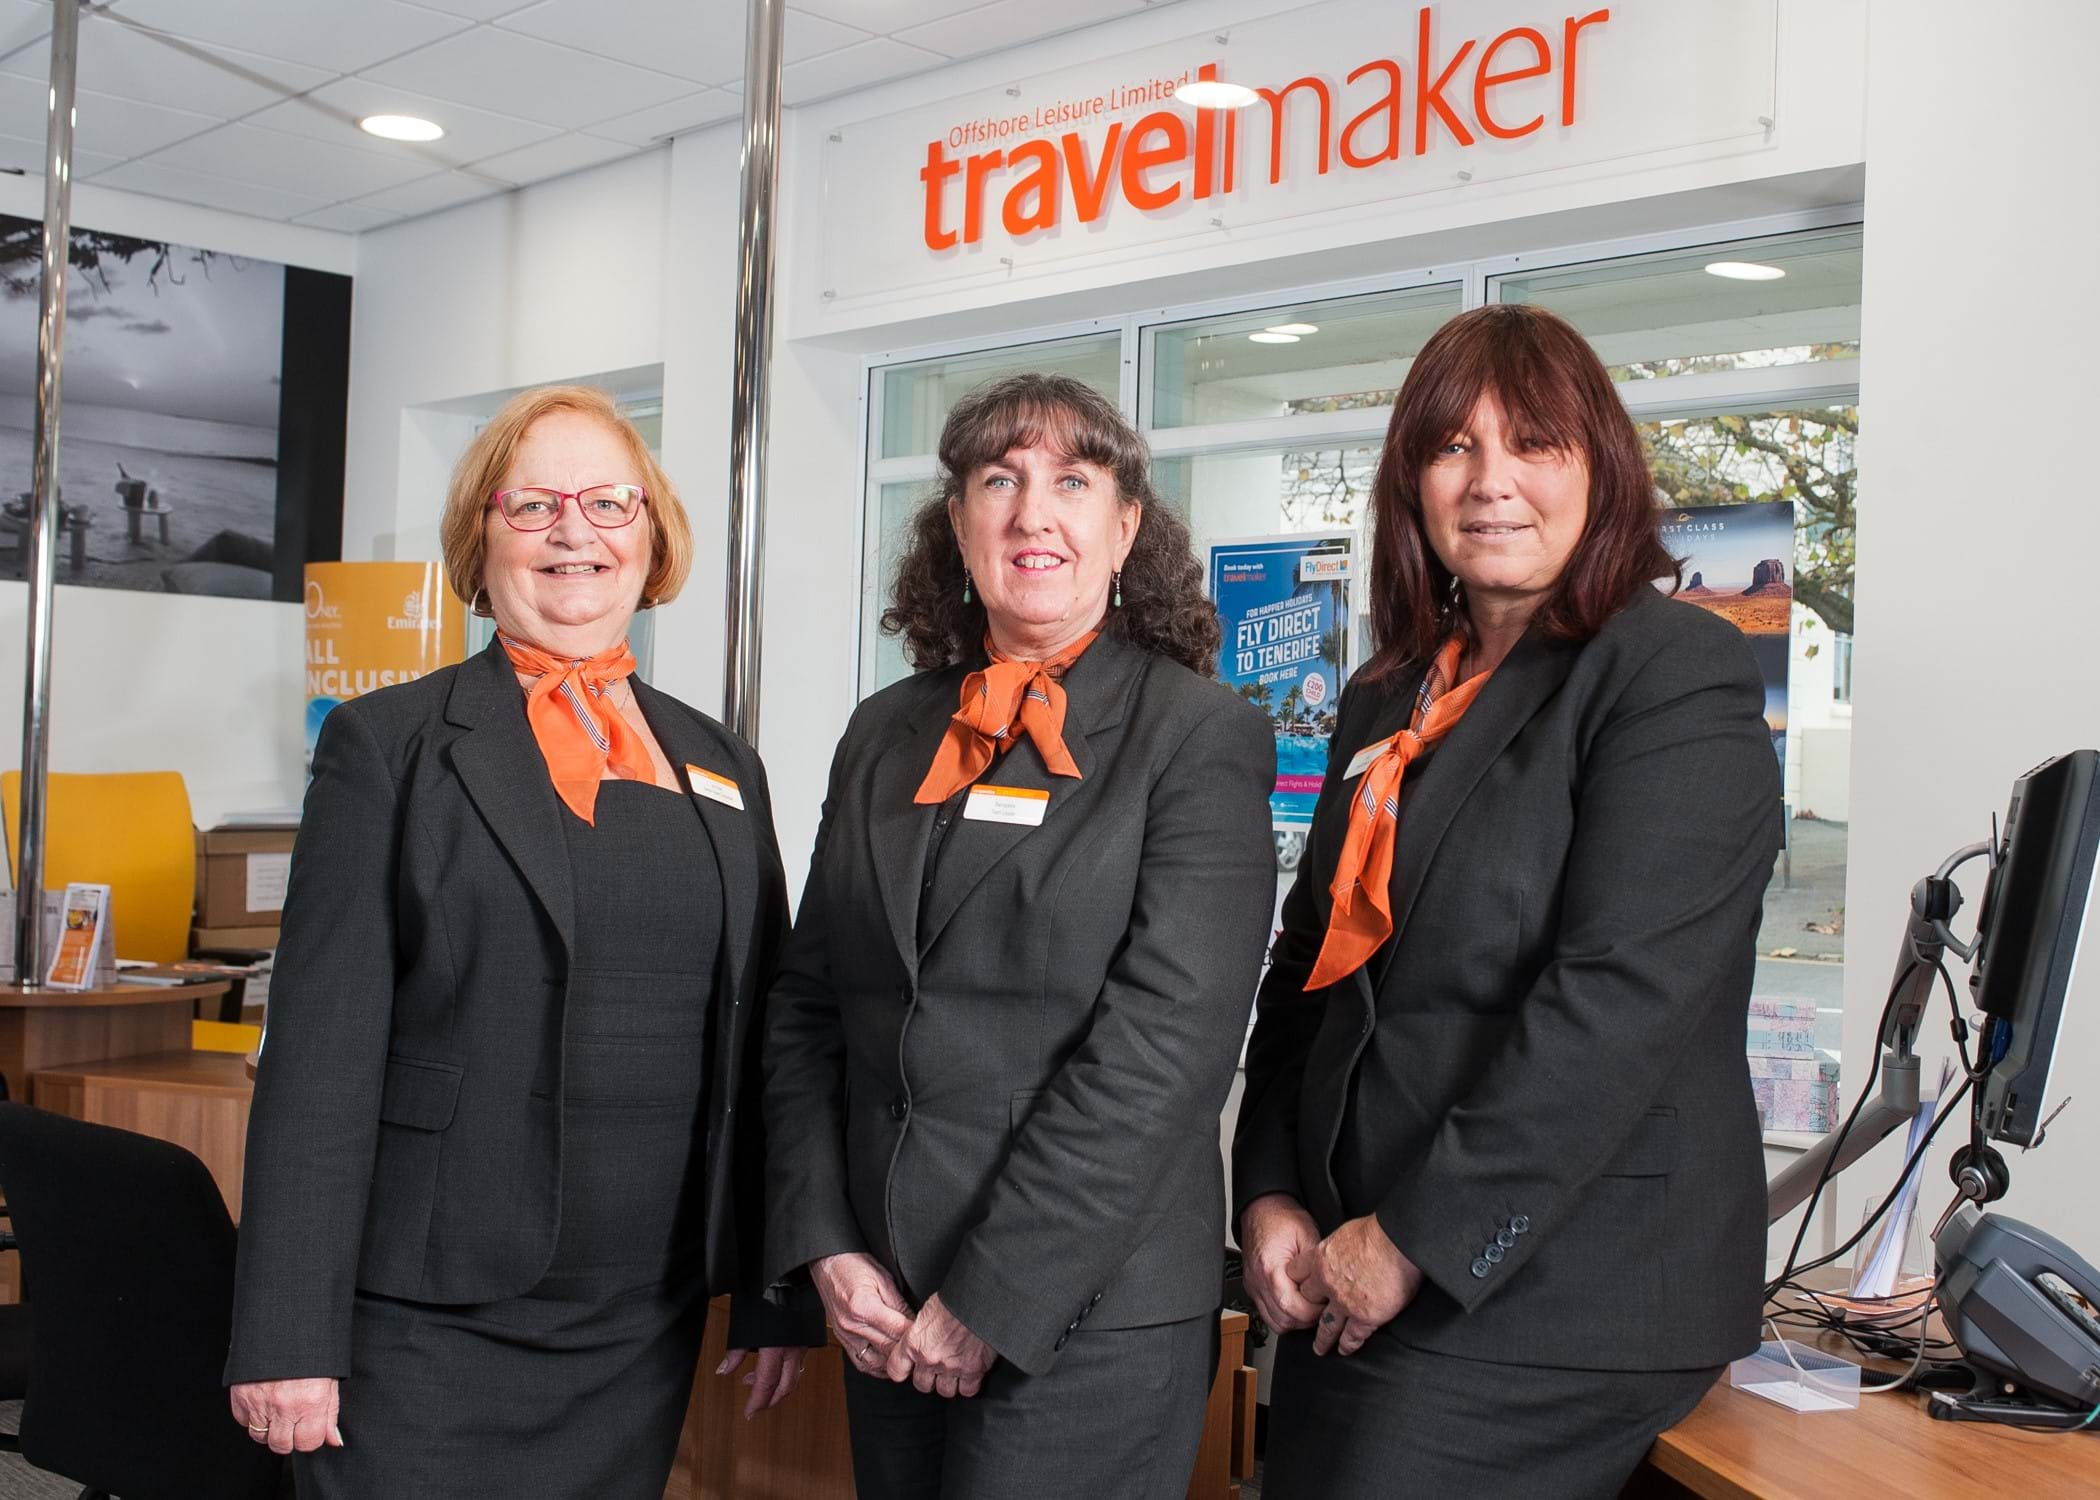 Travelmaker shortlisted for power list of nation's best agencies